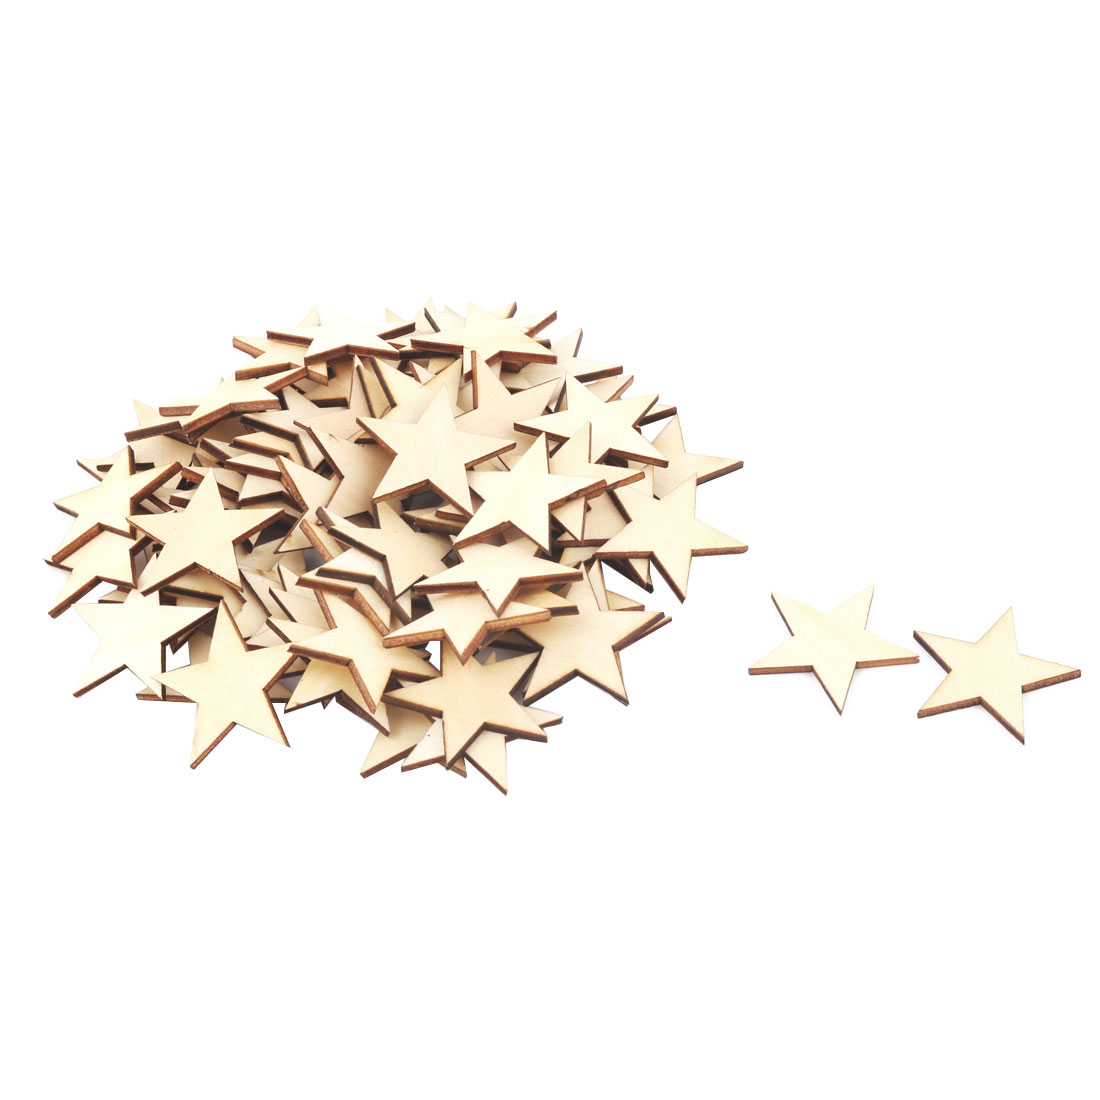 Wooden Star Shaped DIY Craft Christmas Tree Decor Accessories Ornaments Beige 40 x 40mm 75pcs